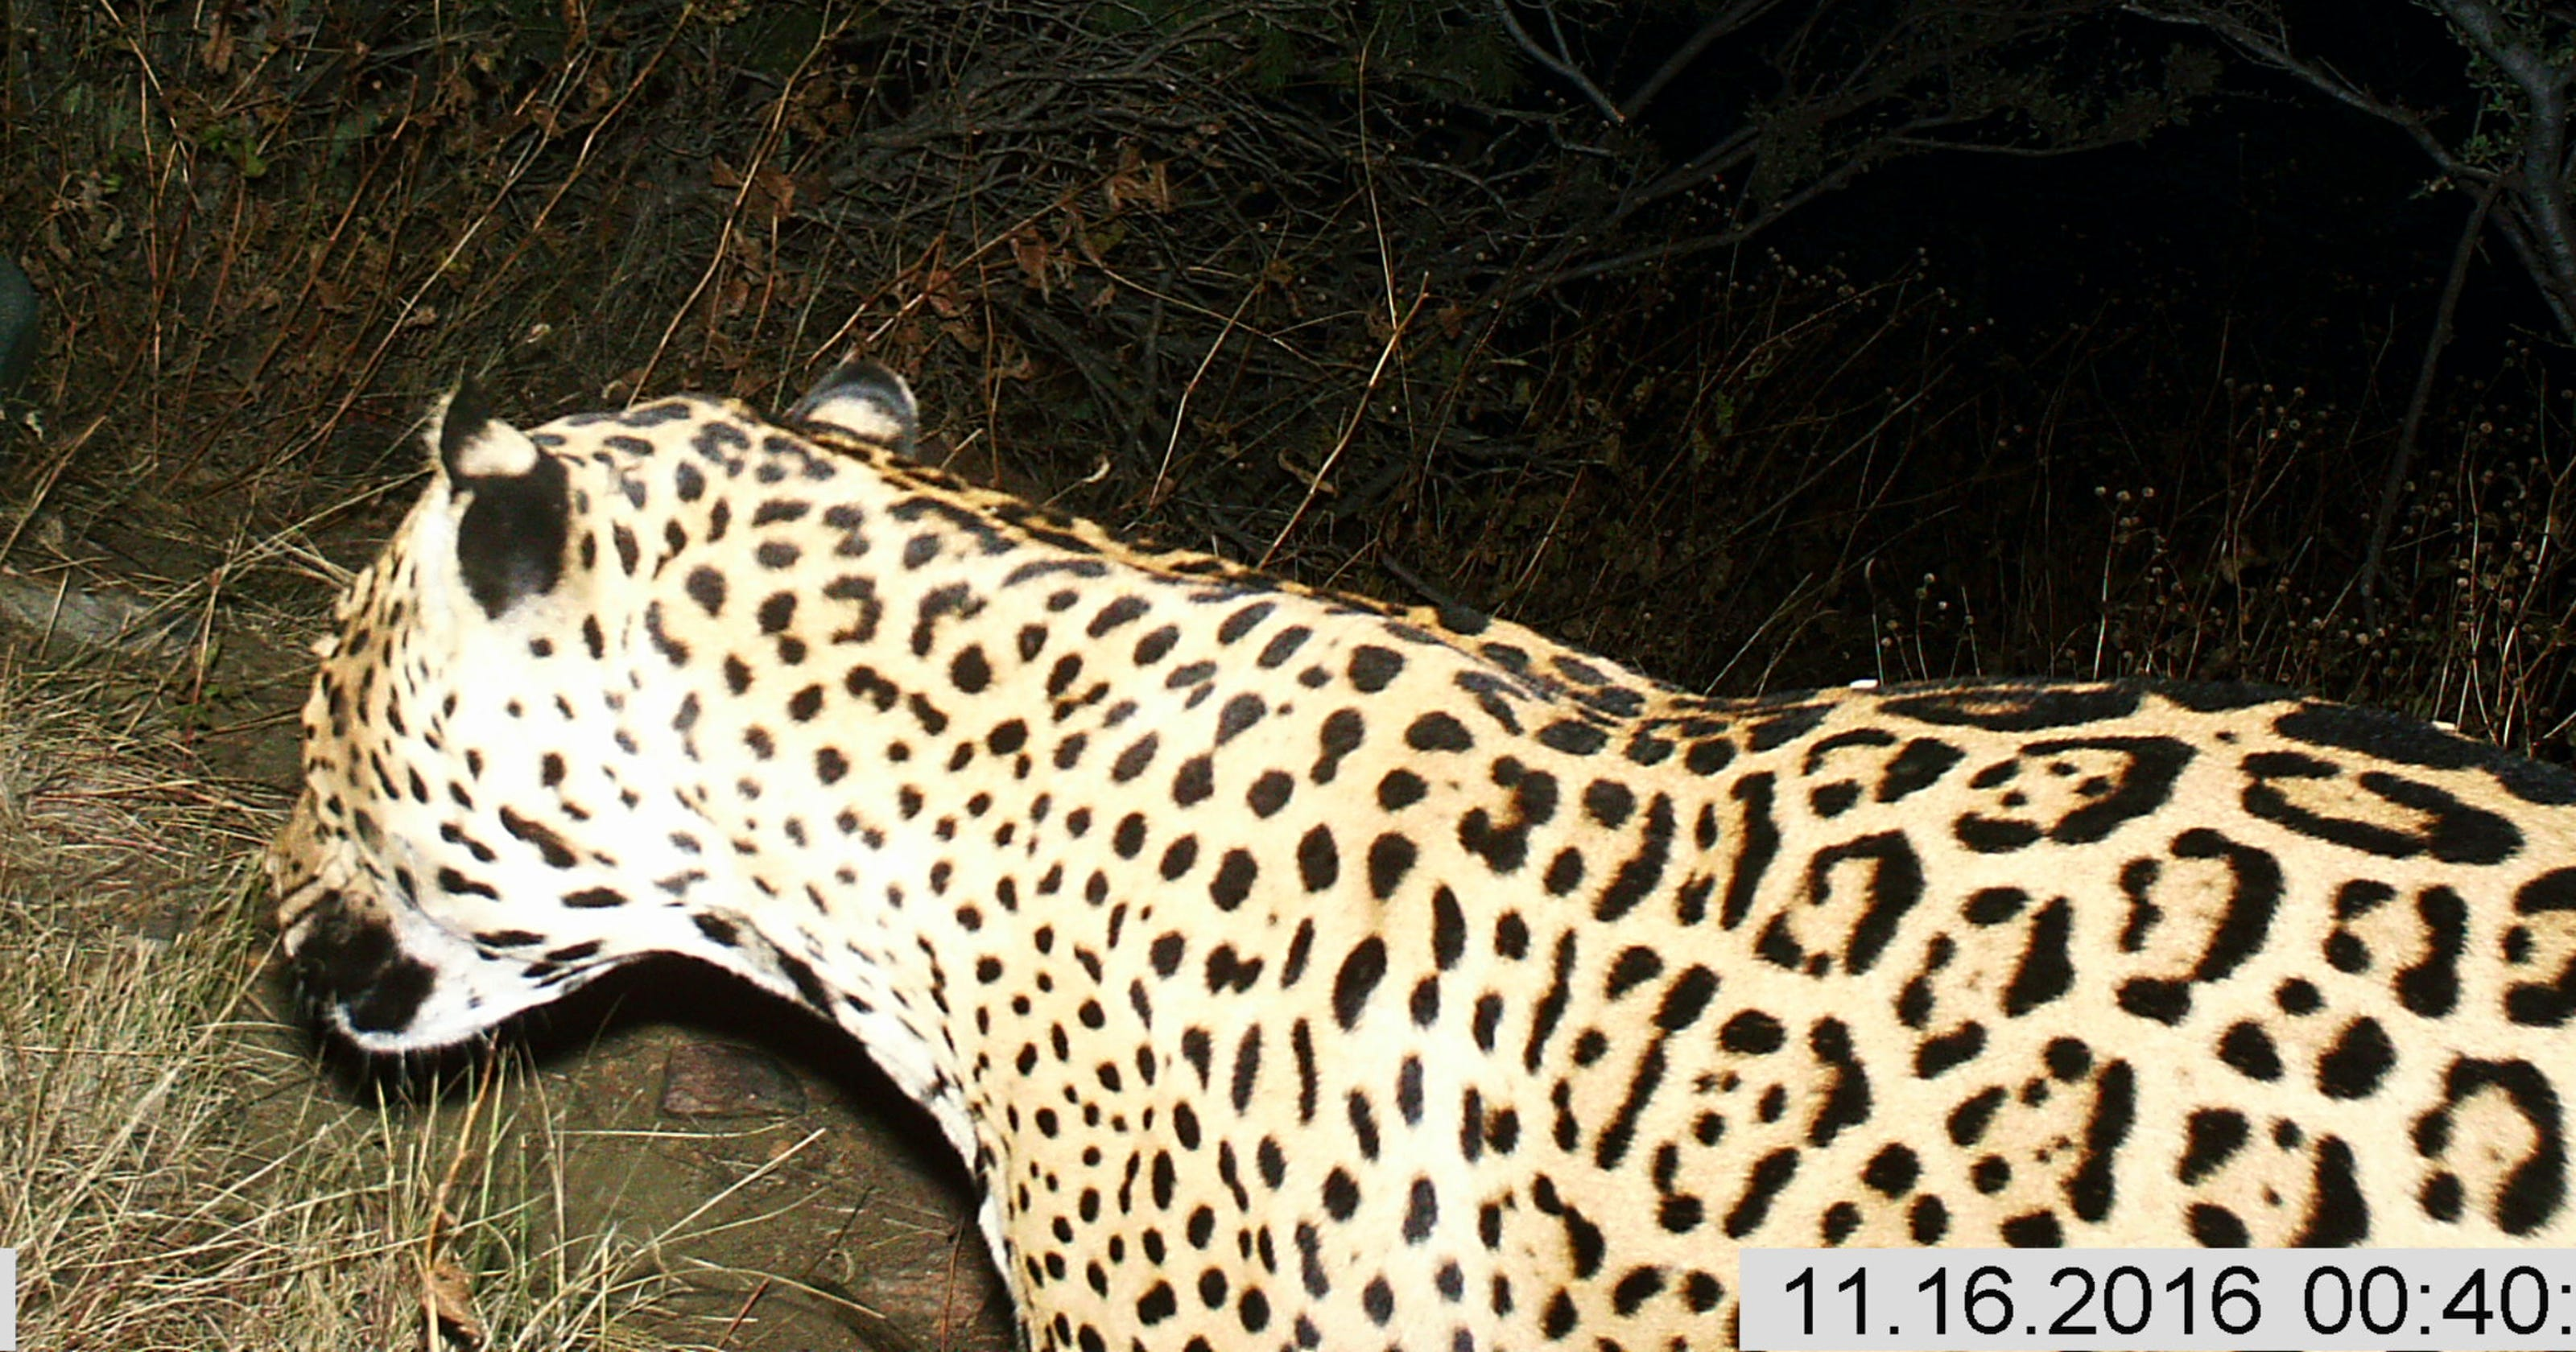 rare jaguar spotted in mountains of arizona